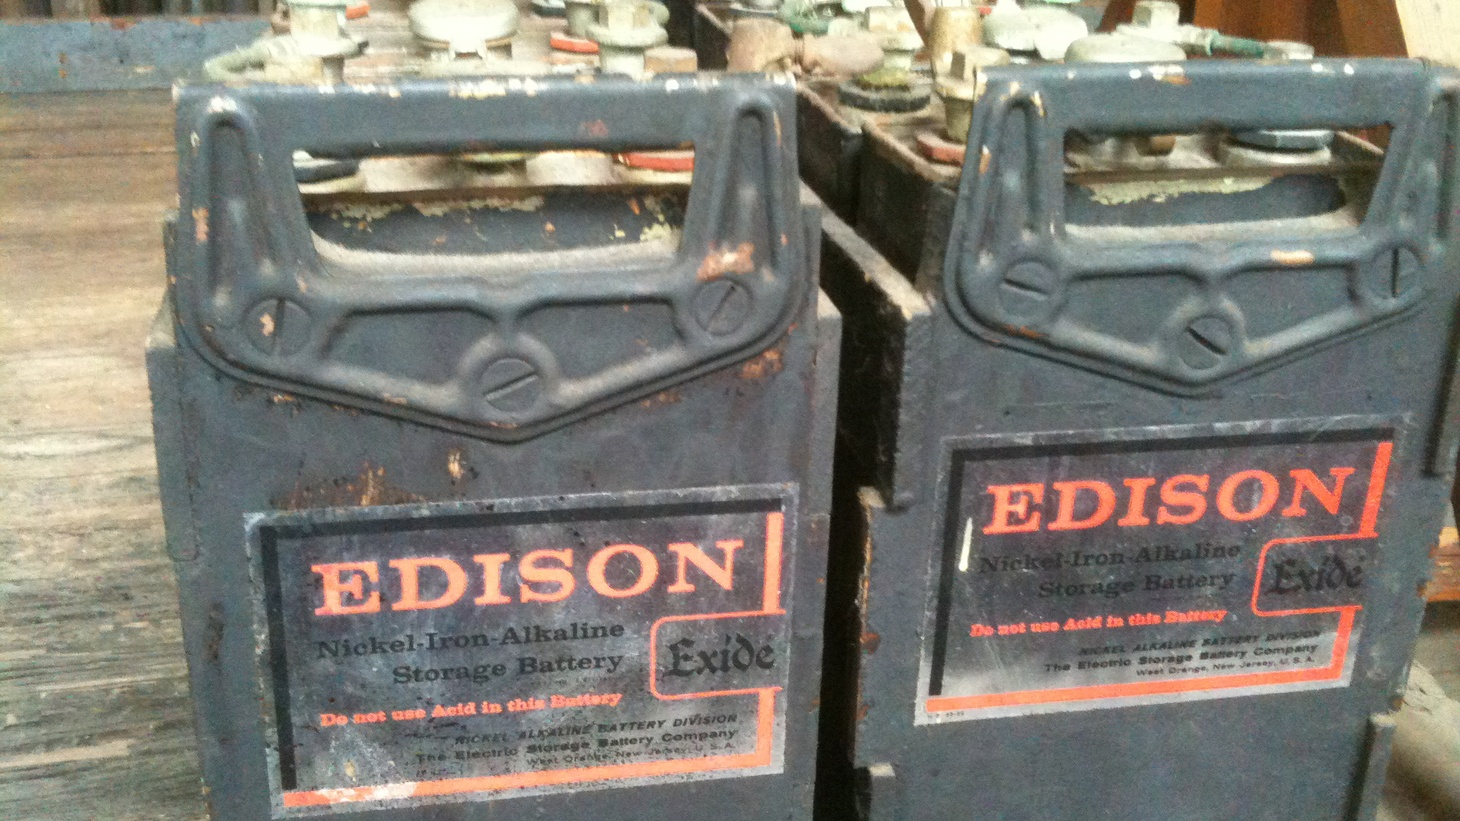 For 30 years, Exide was allowed to recycle lead batteries in Vernon without a full permit. Thousands of children in surrounding neighborhoods appear to have been exposed to lead poison. Now the state agency that stood by while environmental crimes were committed is accused of being lax about making sure there's a cleanup. We get an update.